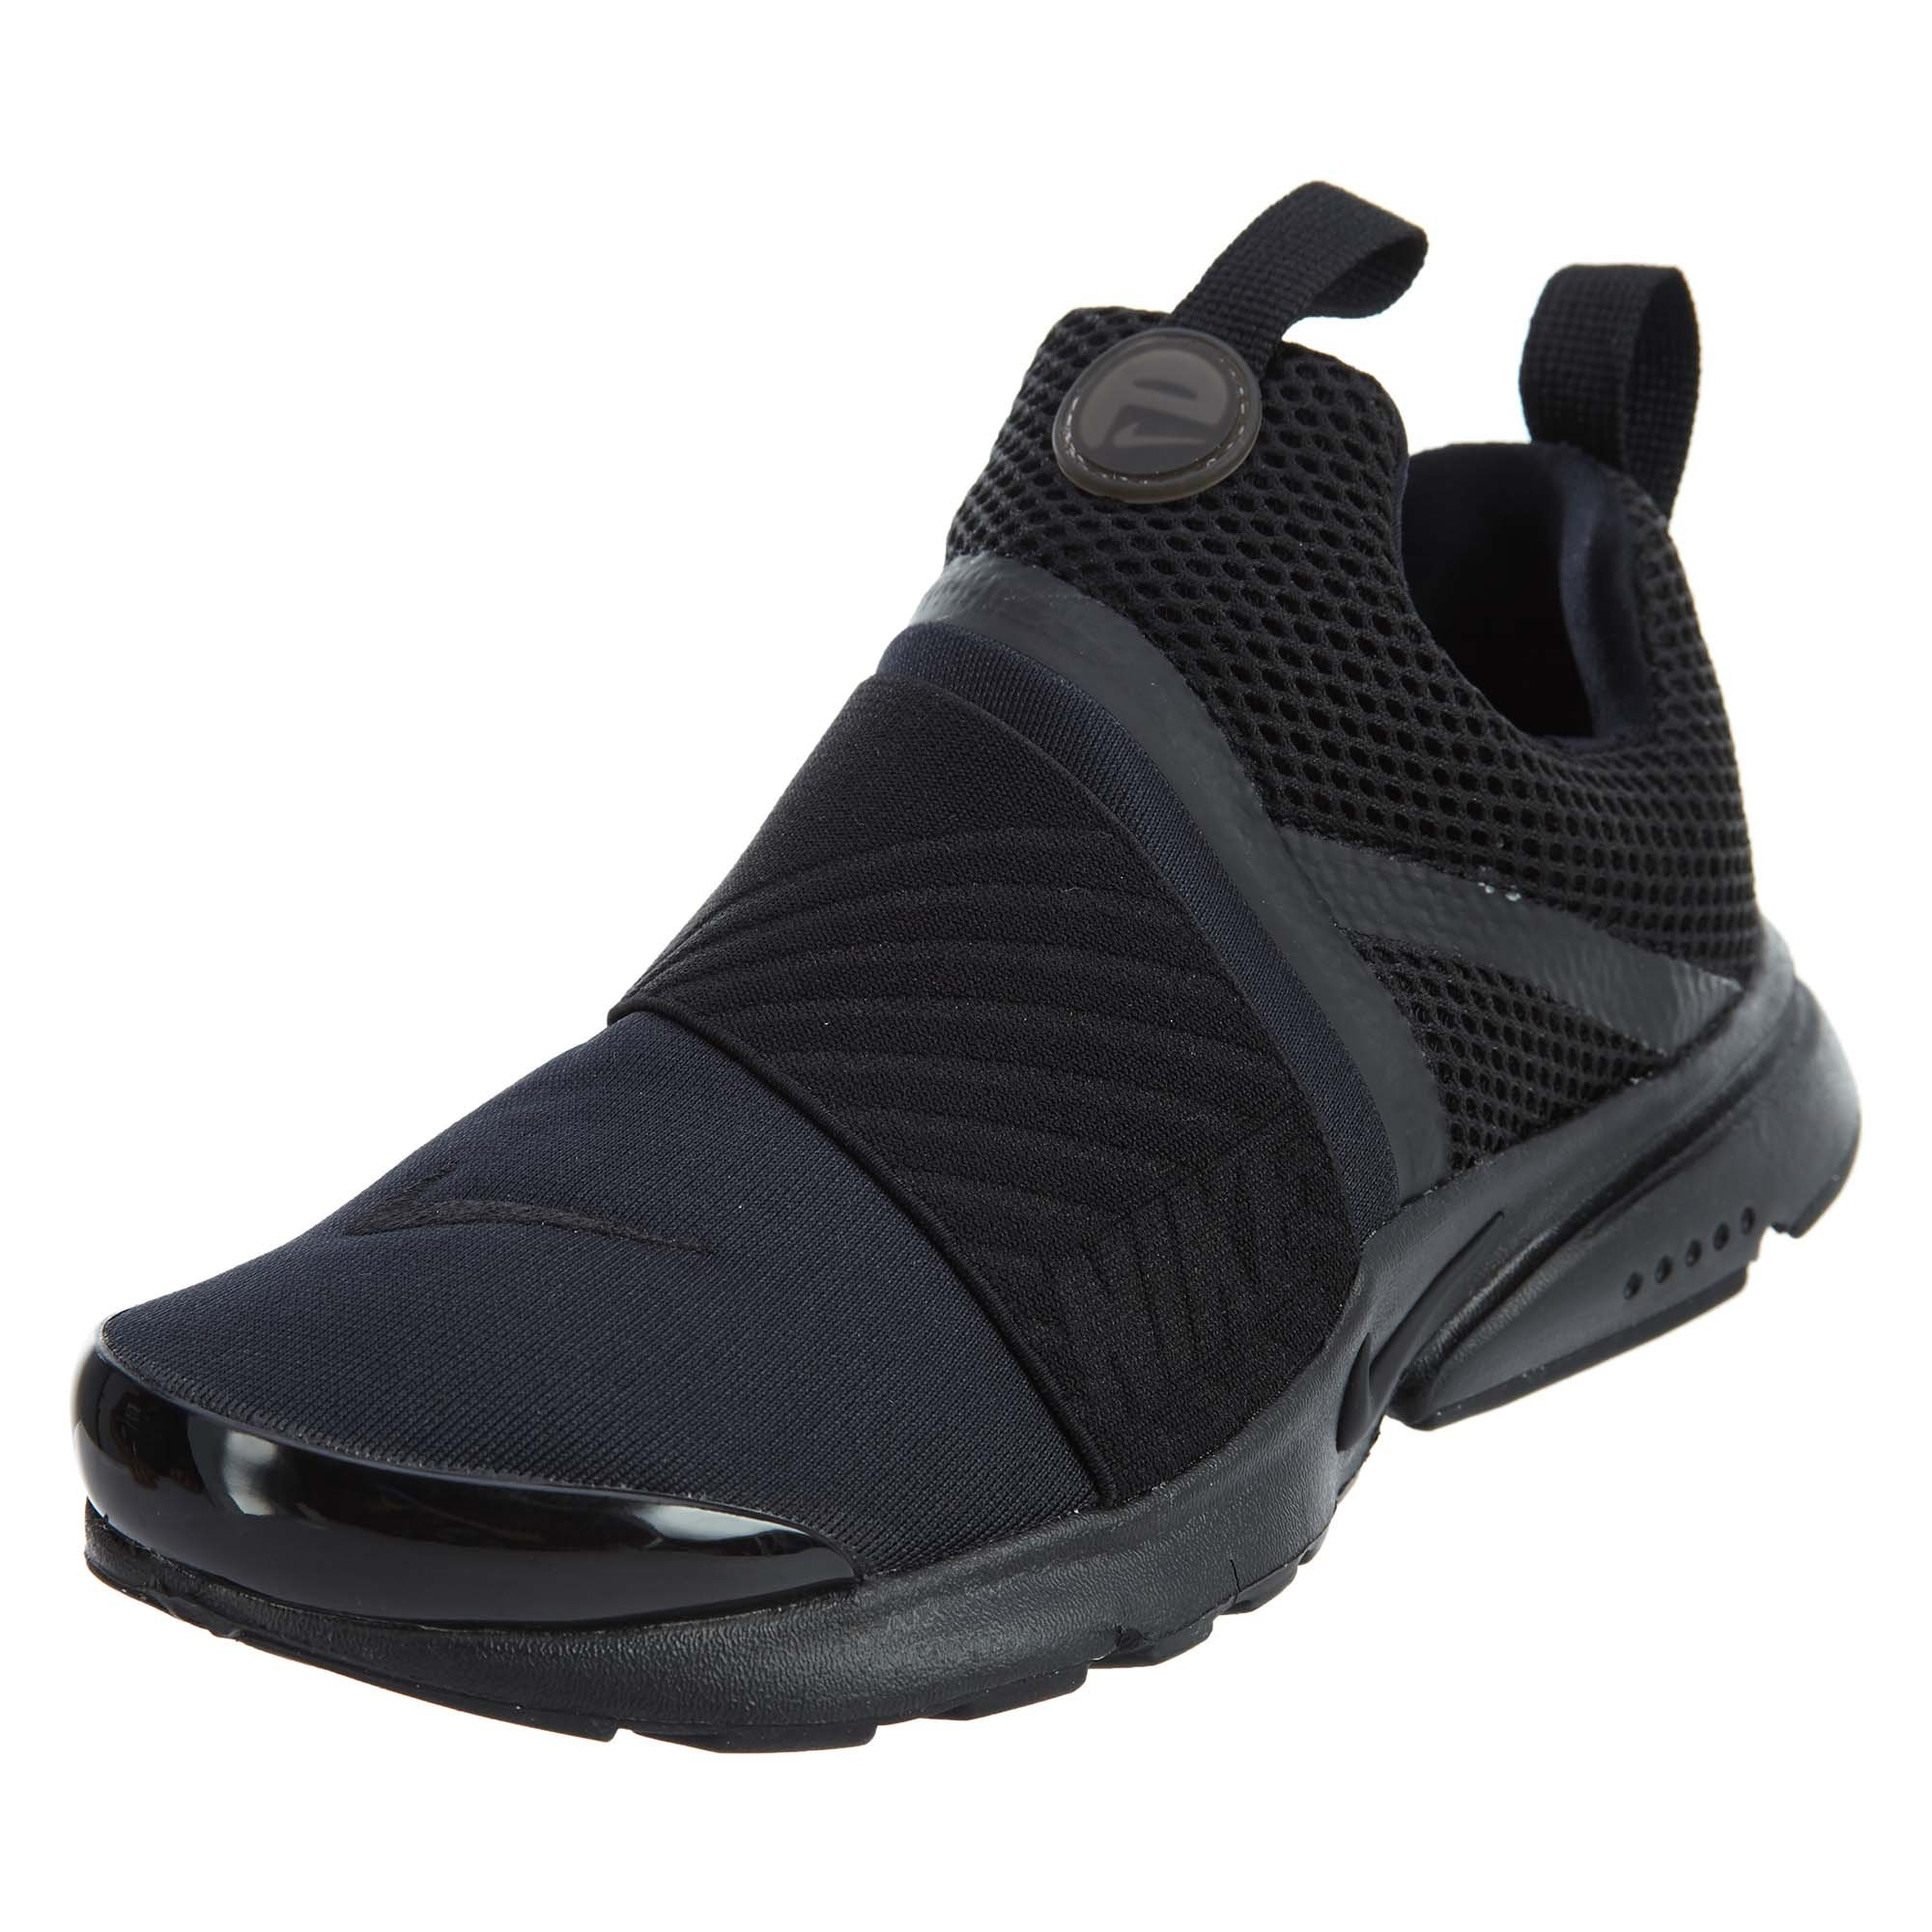 6d4ff9efa8c Galleon - NIKE Presto Extreme Big Kid s Shoes Gym Black Black 870020-001 (5  M US)